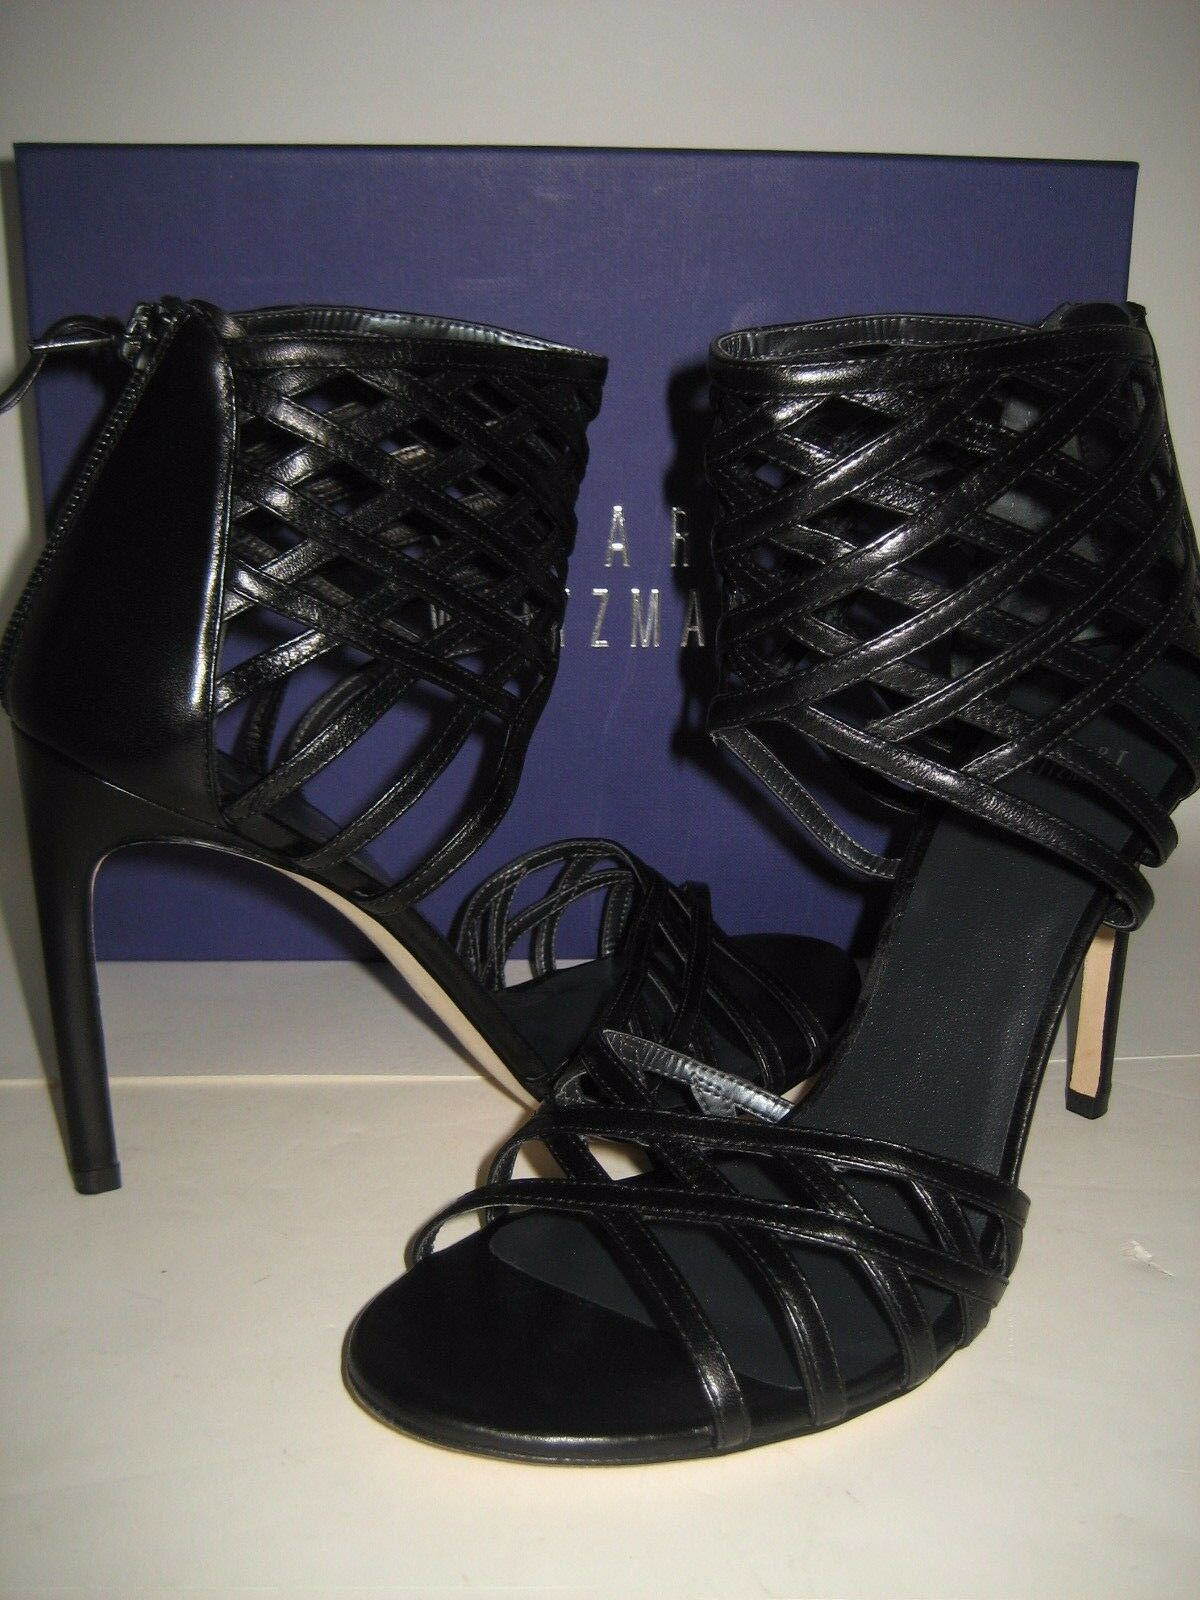 NEW BOX Stuart Weitzman Cajun Woven Leather Sandals US 9.5 High Heels shoes